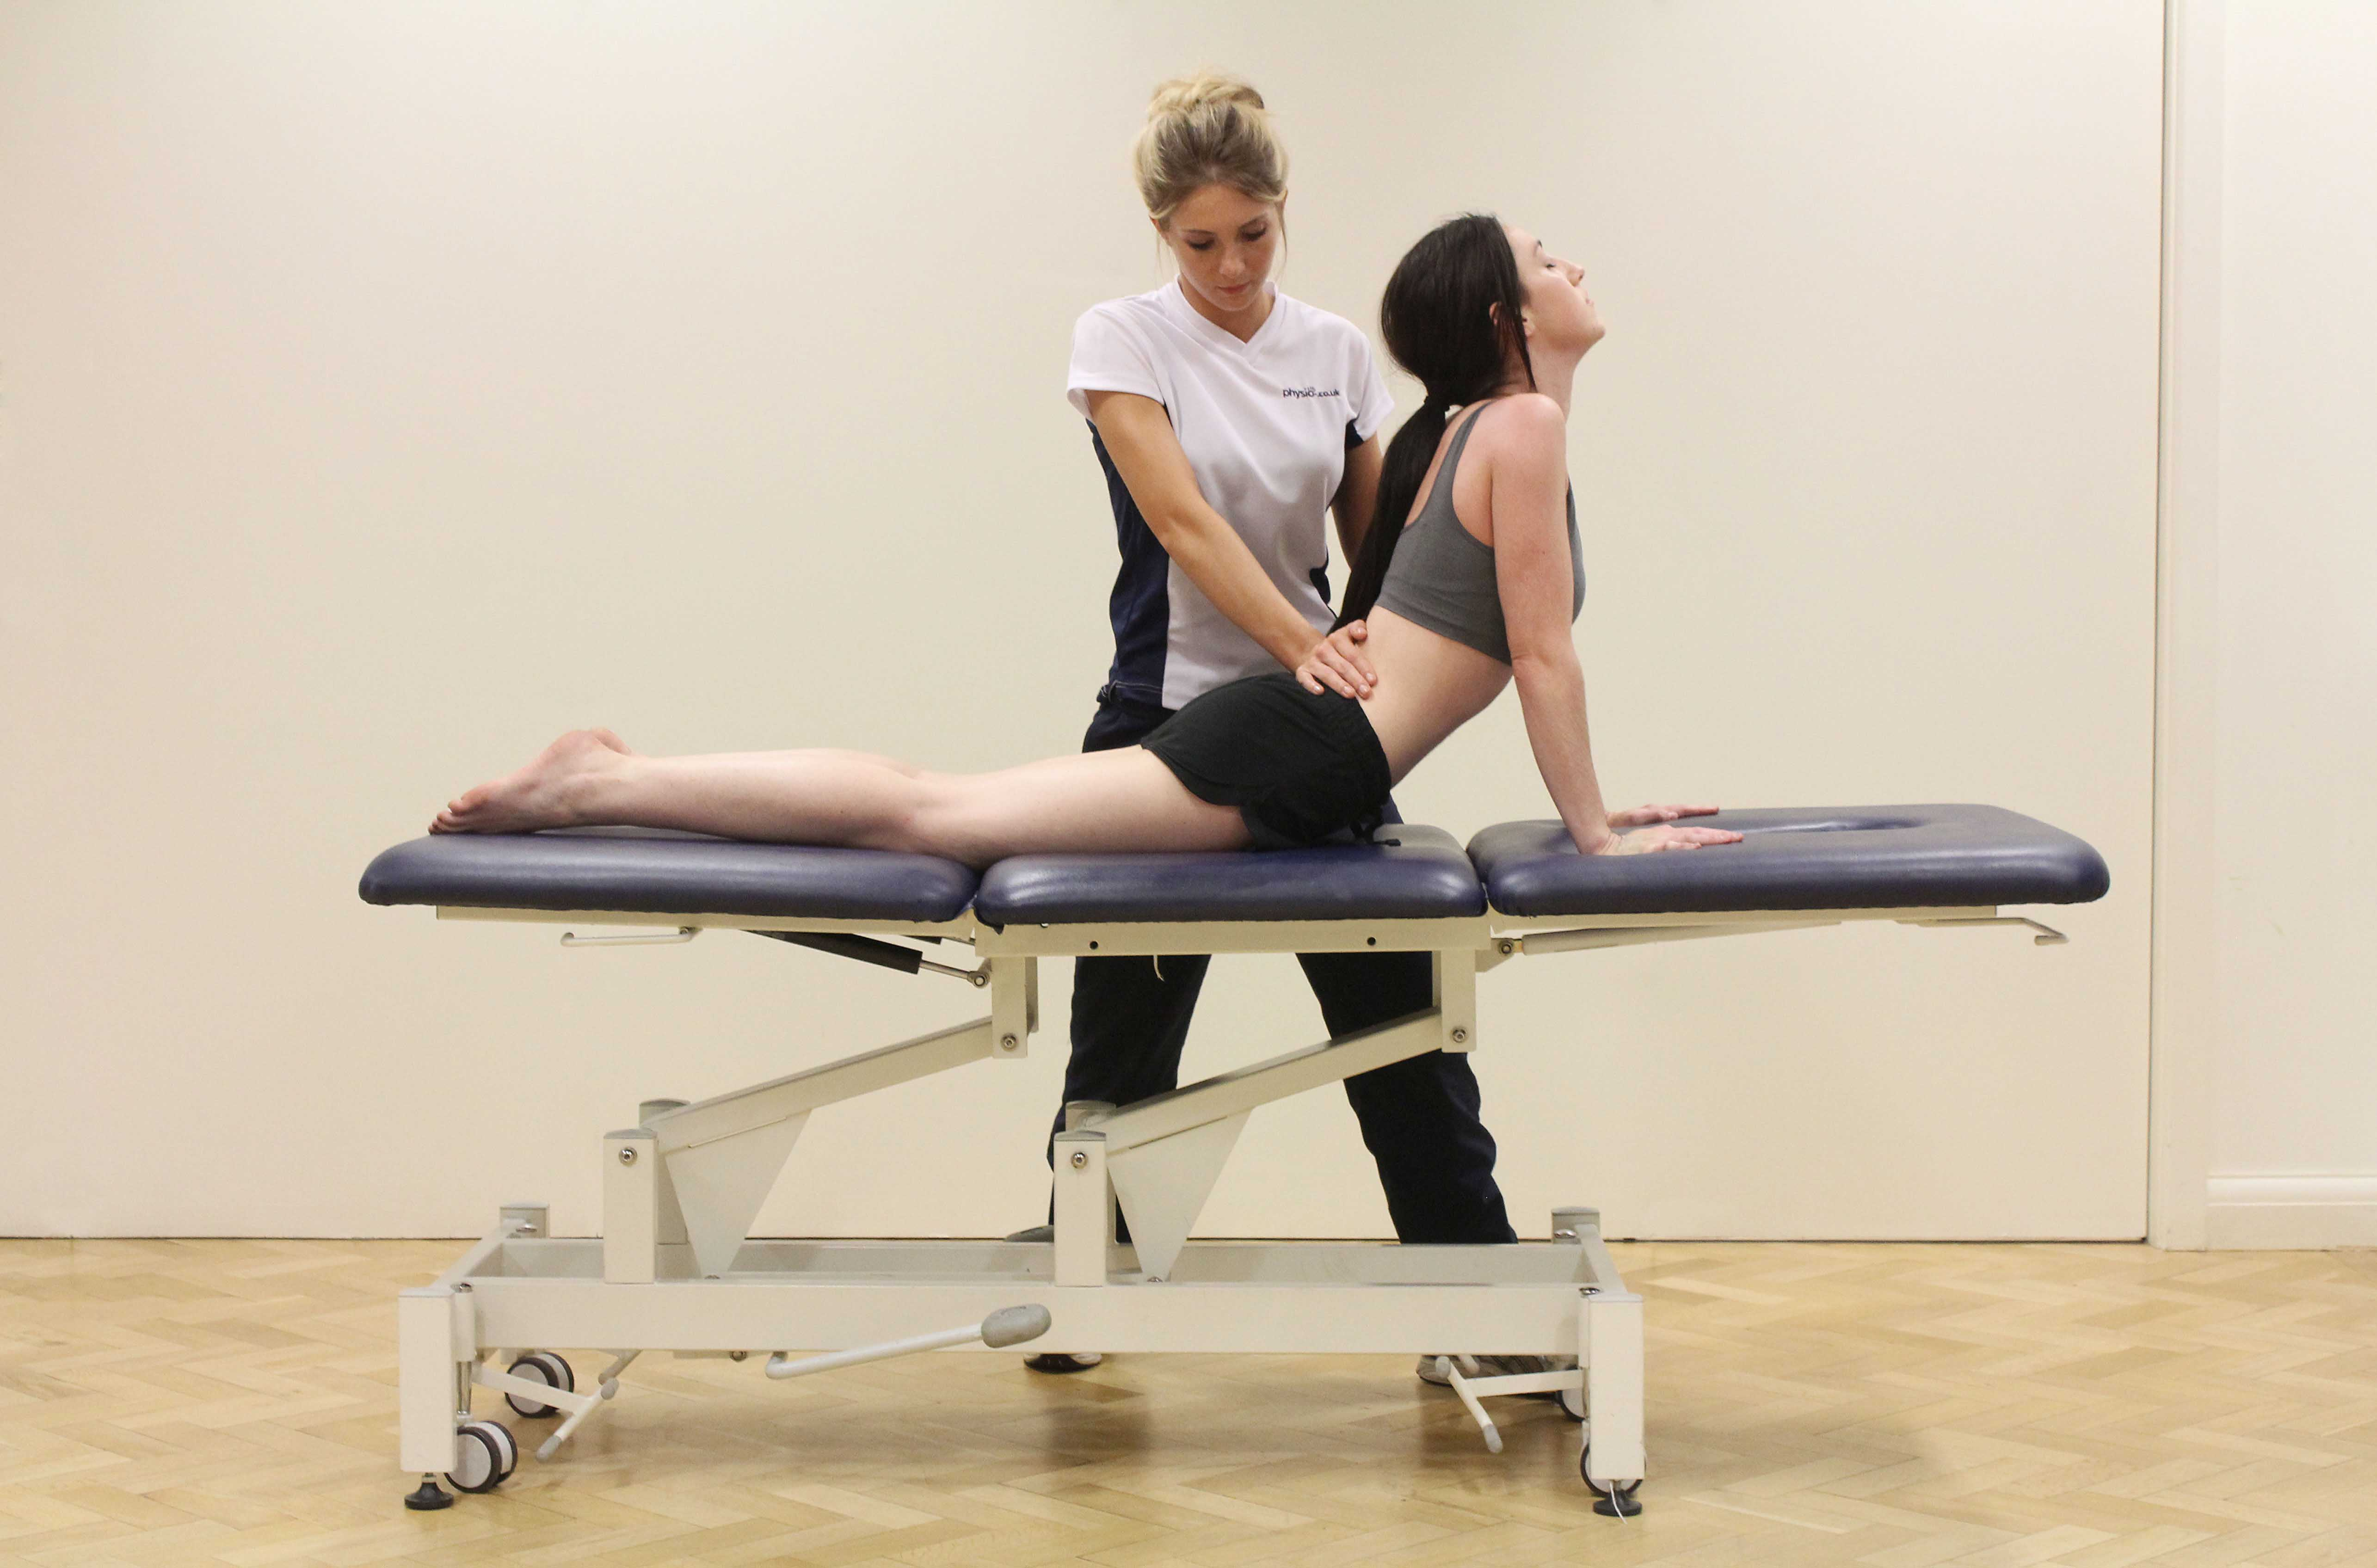 Stretches and compression of the lower back structures by therapist to relive painful symptoms